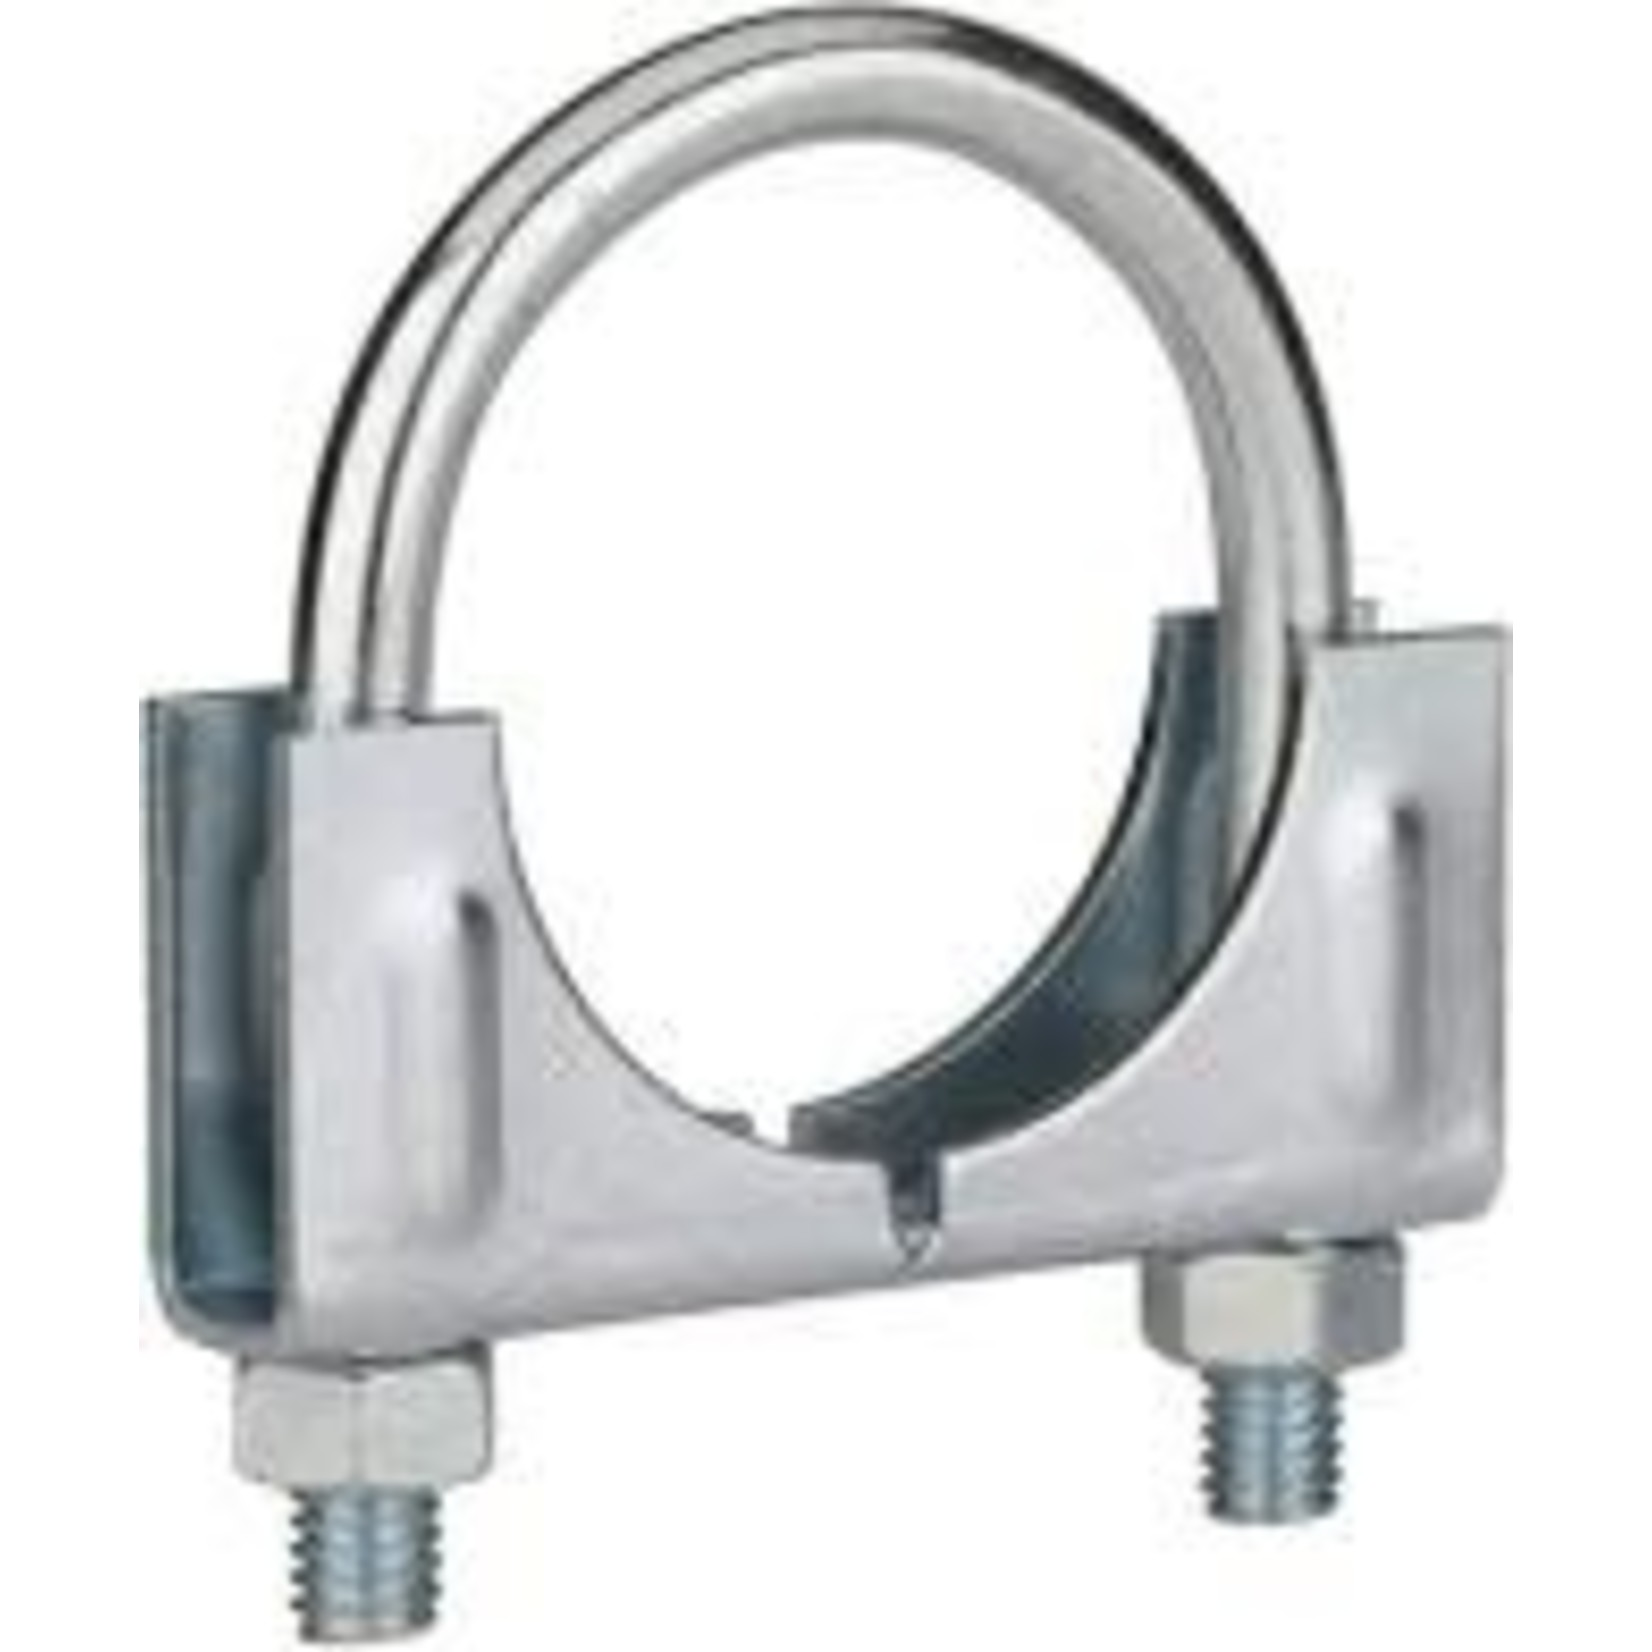 "NICSON 3-1/2"" STEEL GUILLITINE CLAMP"